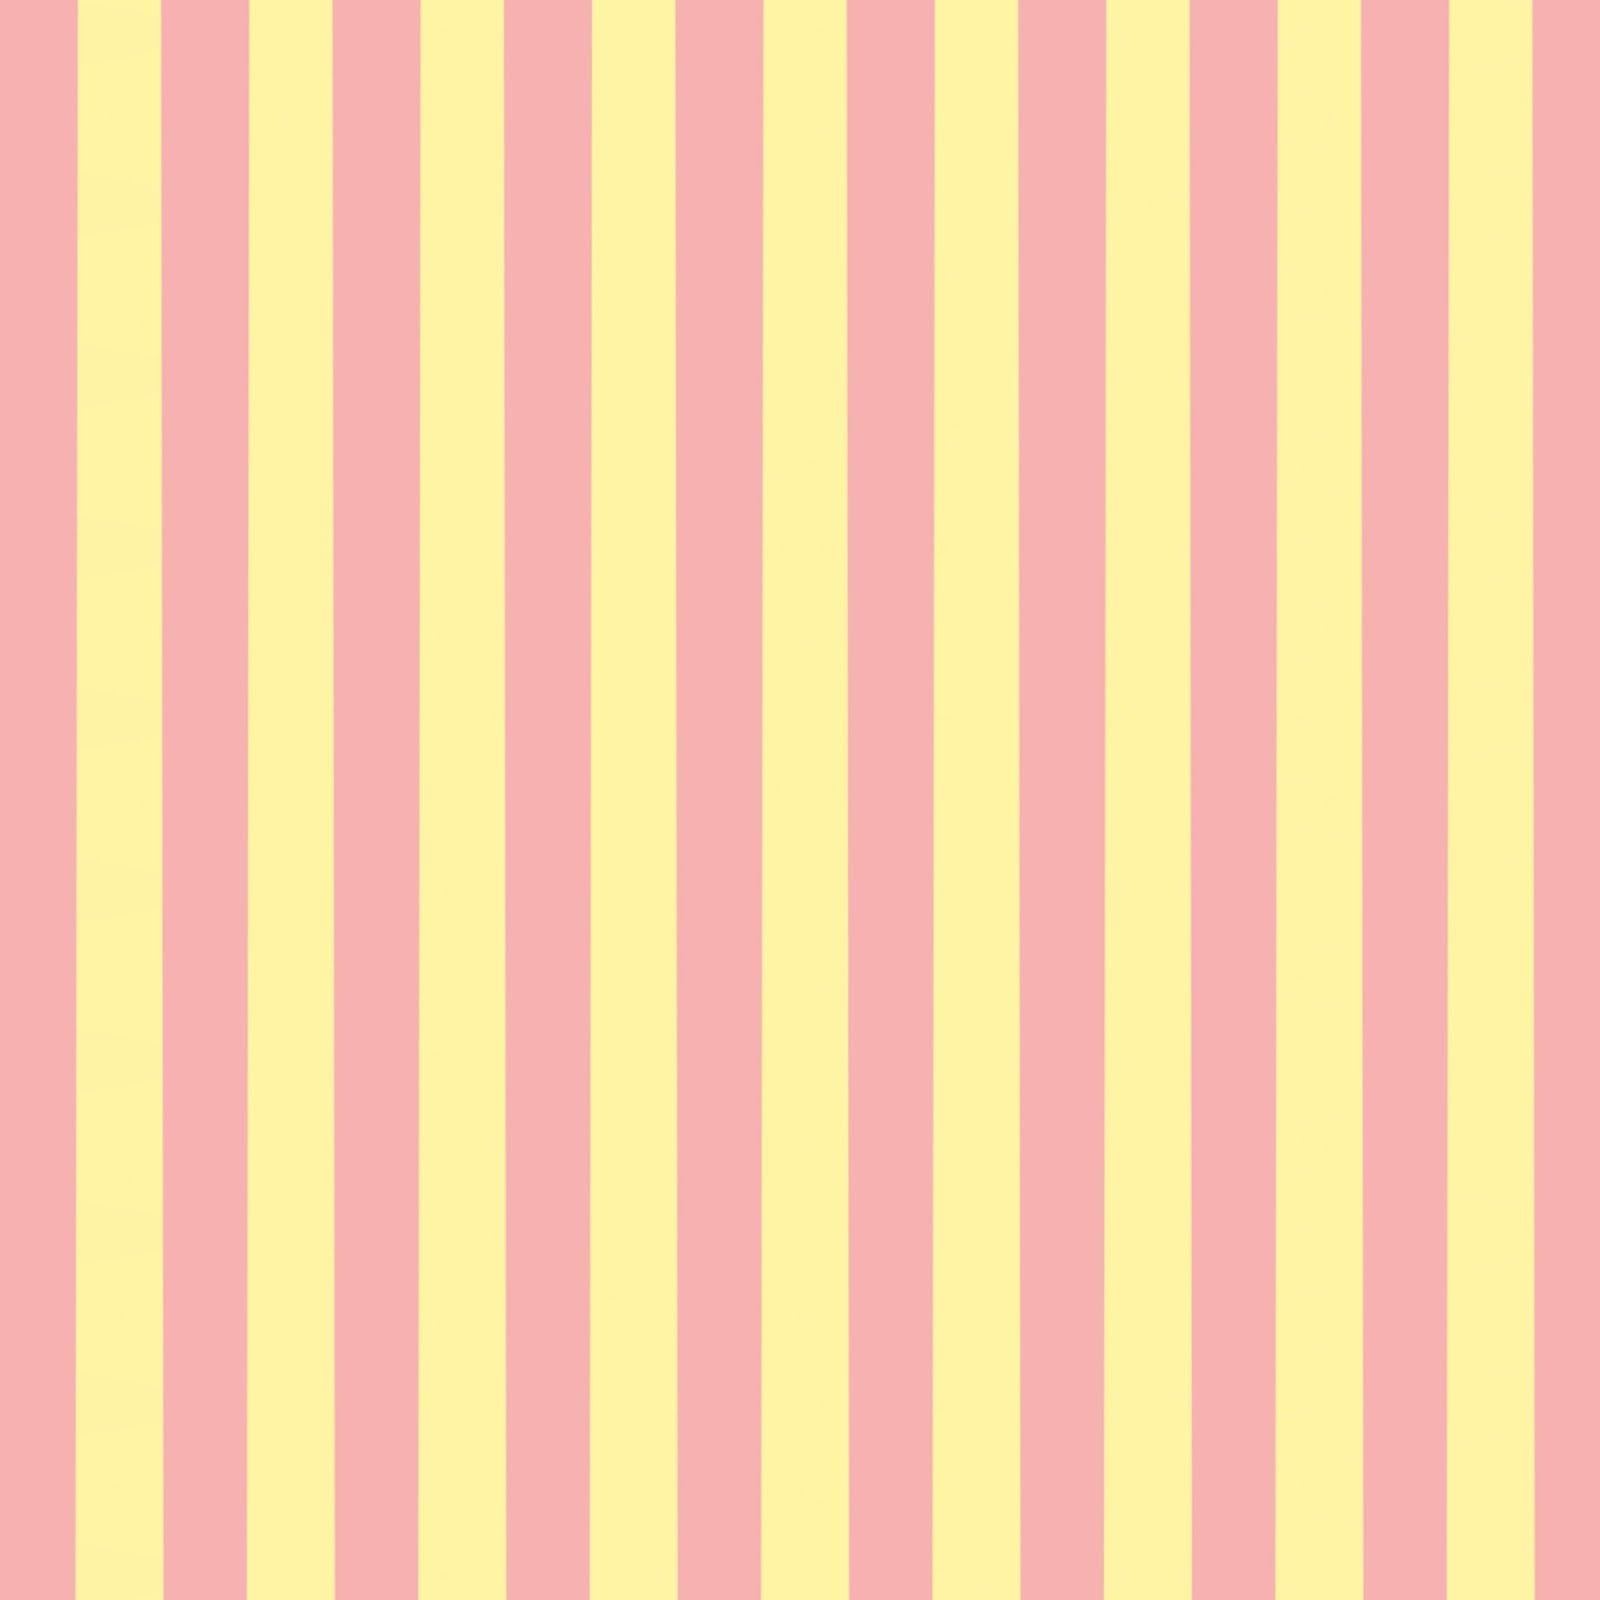 FREE Digital Scrapbook Paper - Pink and Yellow Stripes ...